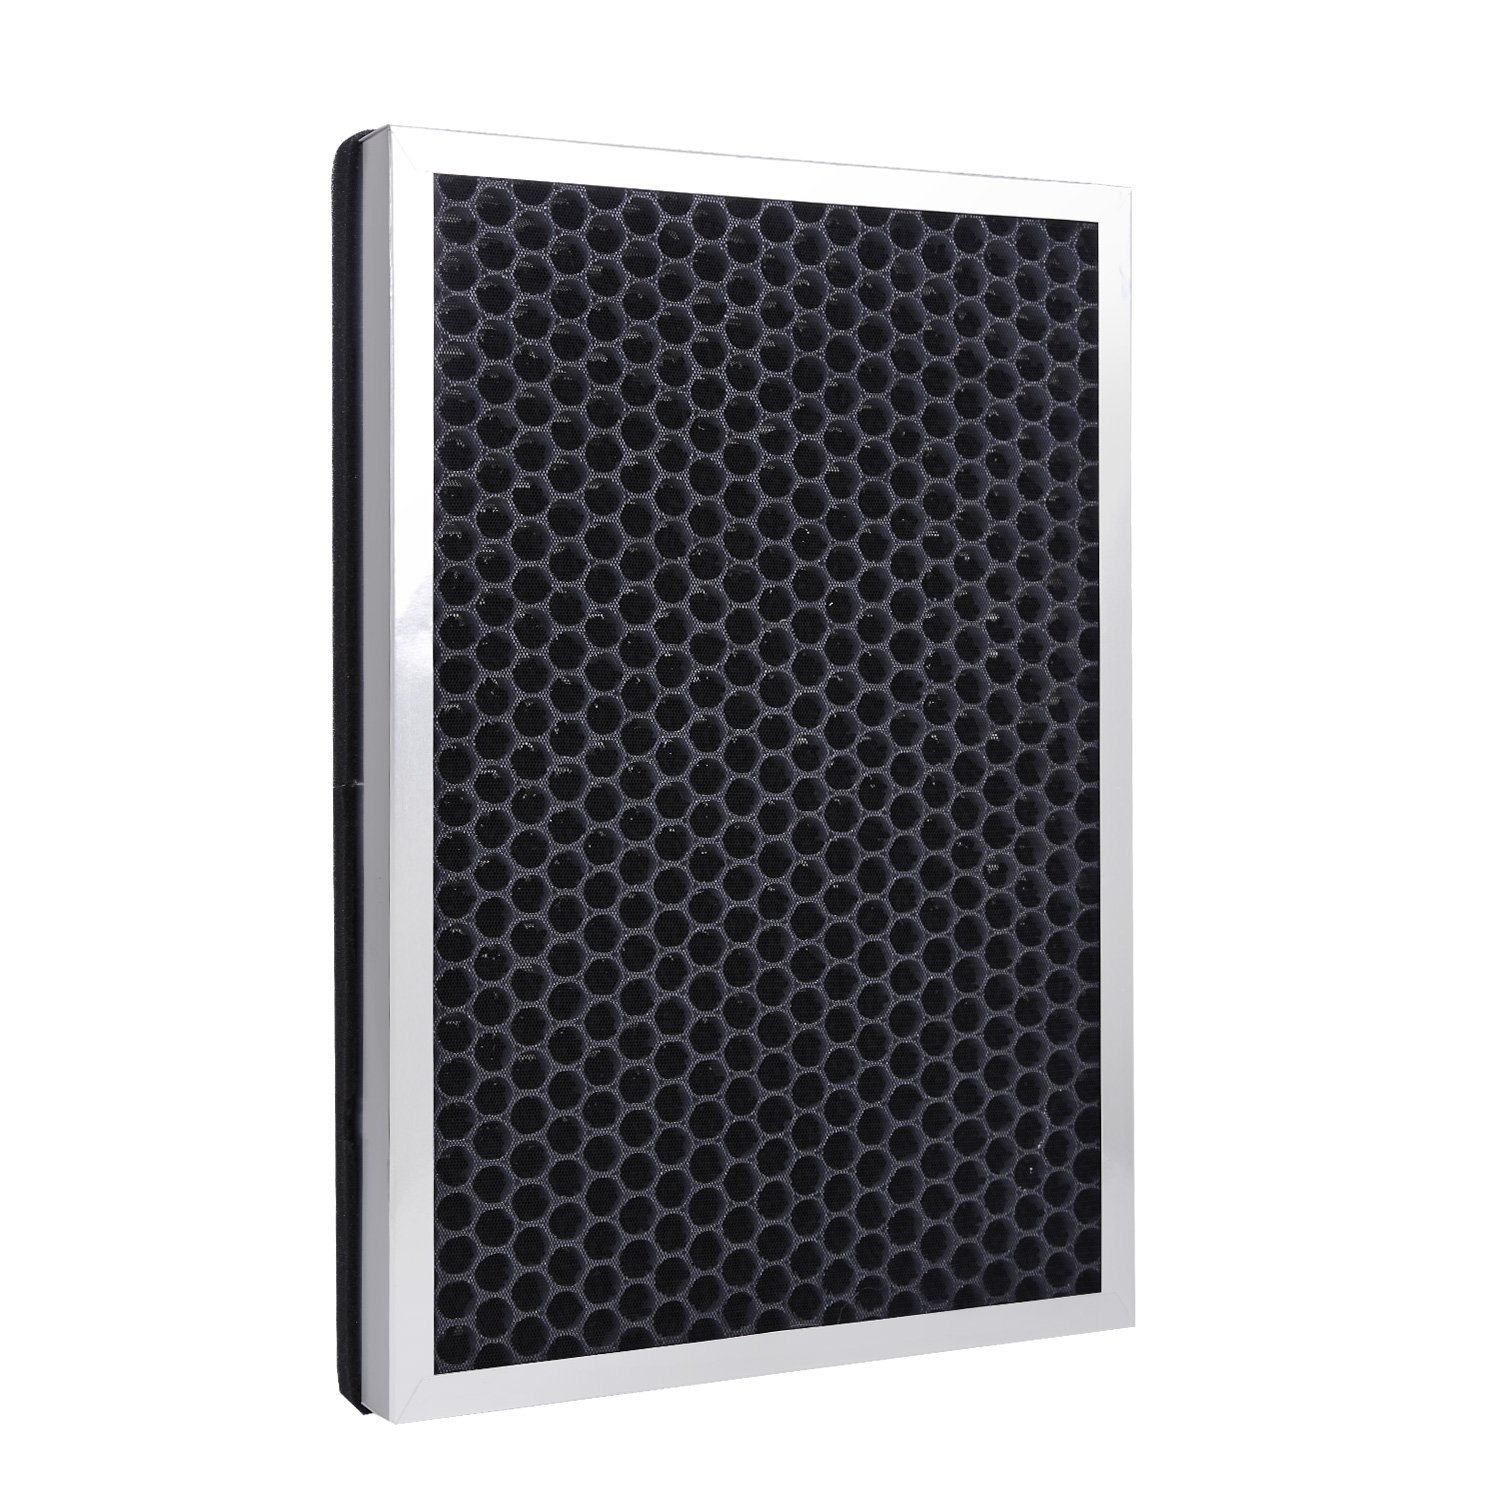 Homeleader Air Purifier J03-031 Replacement Filter, Fibre Filter, High Efficiency HEPA Filter and Activated Carbon Filter 3 In 1 Filter